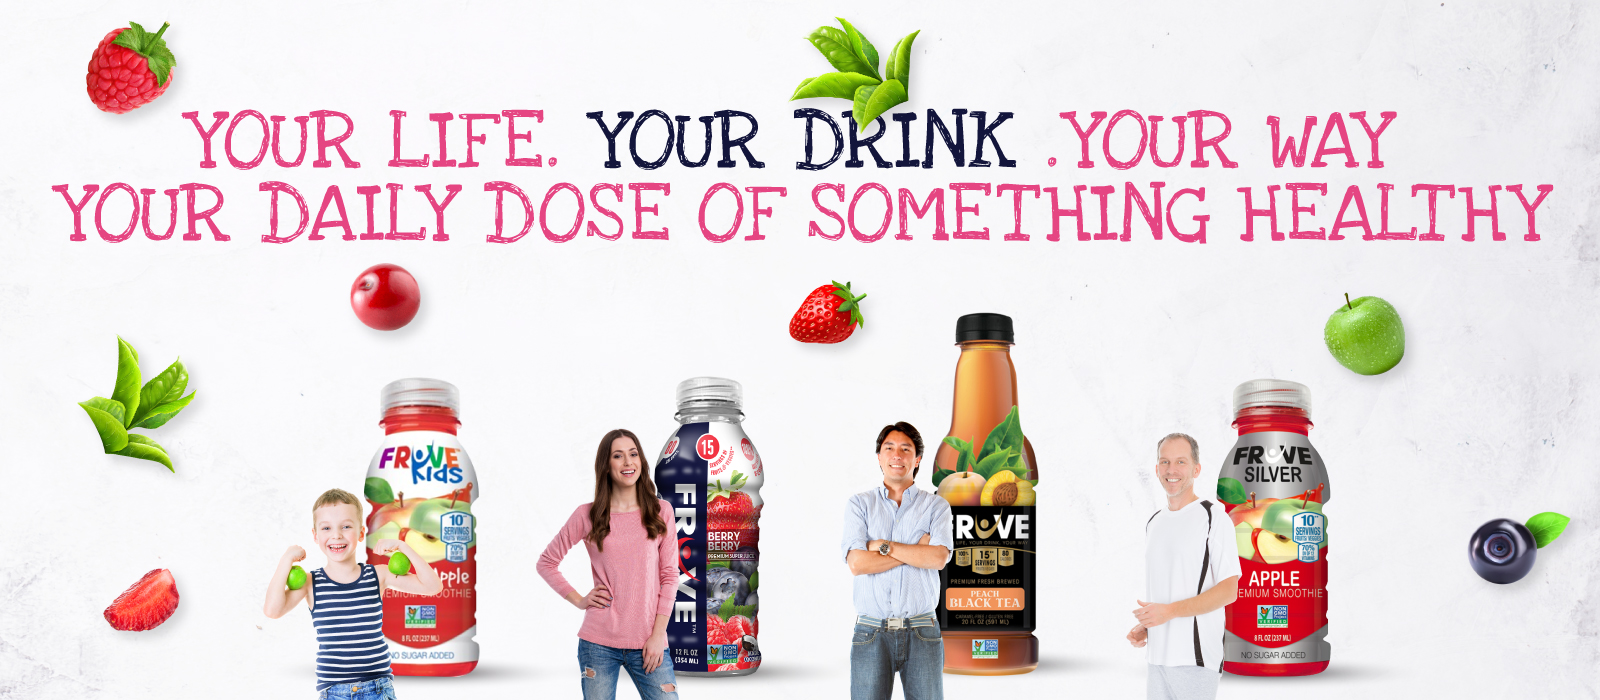 Fruve Fruits Juice | Your Life. Your Drink. Your Way | Fruve Kids | Fruve Silver | Fruve Teas